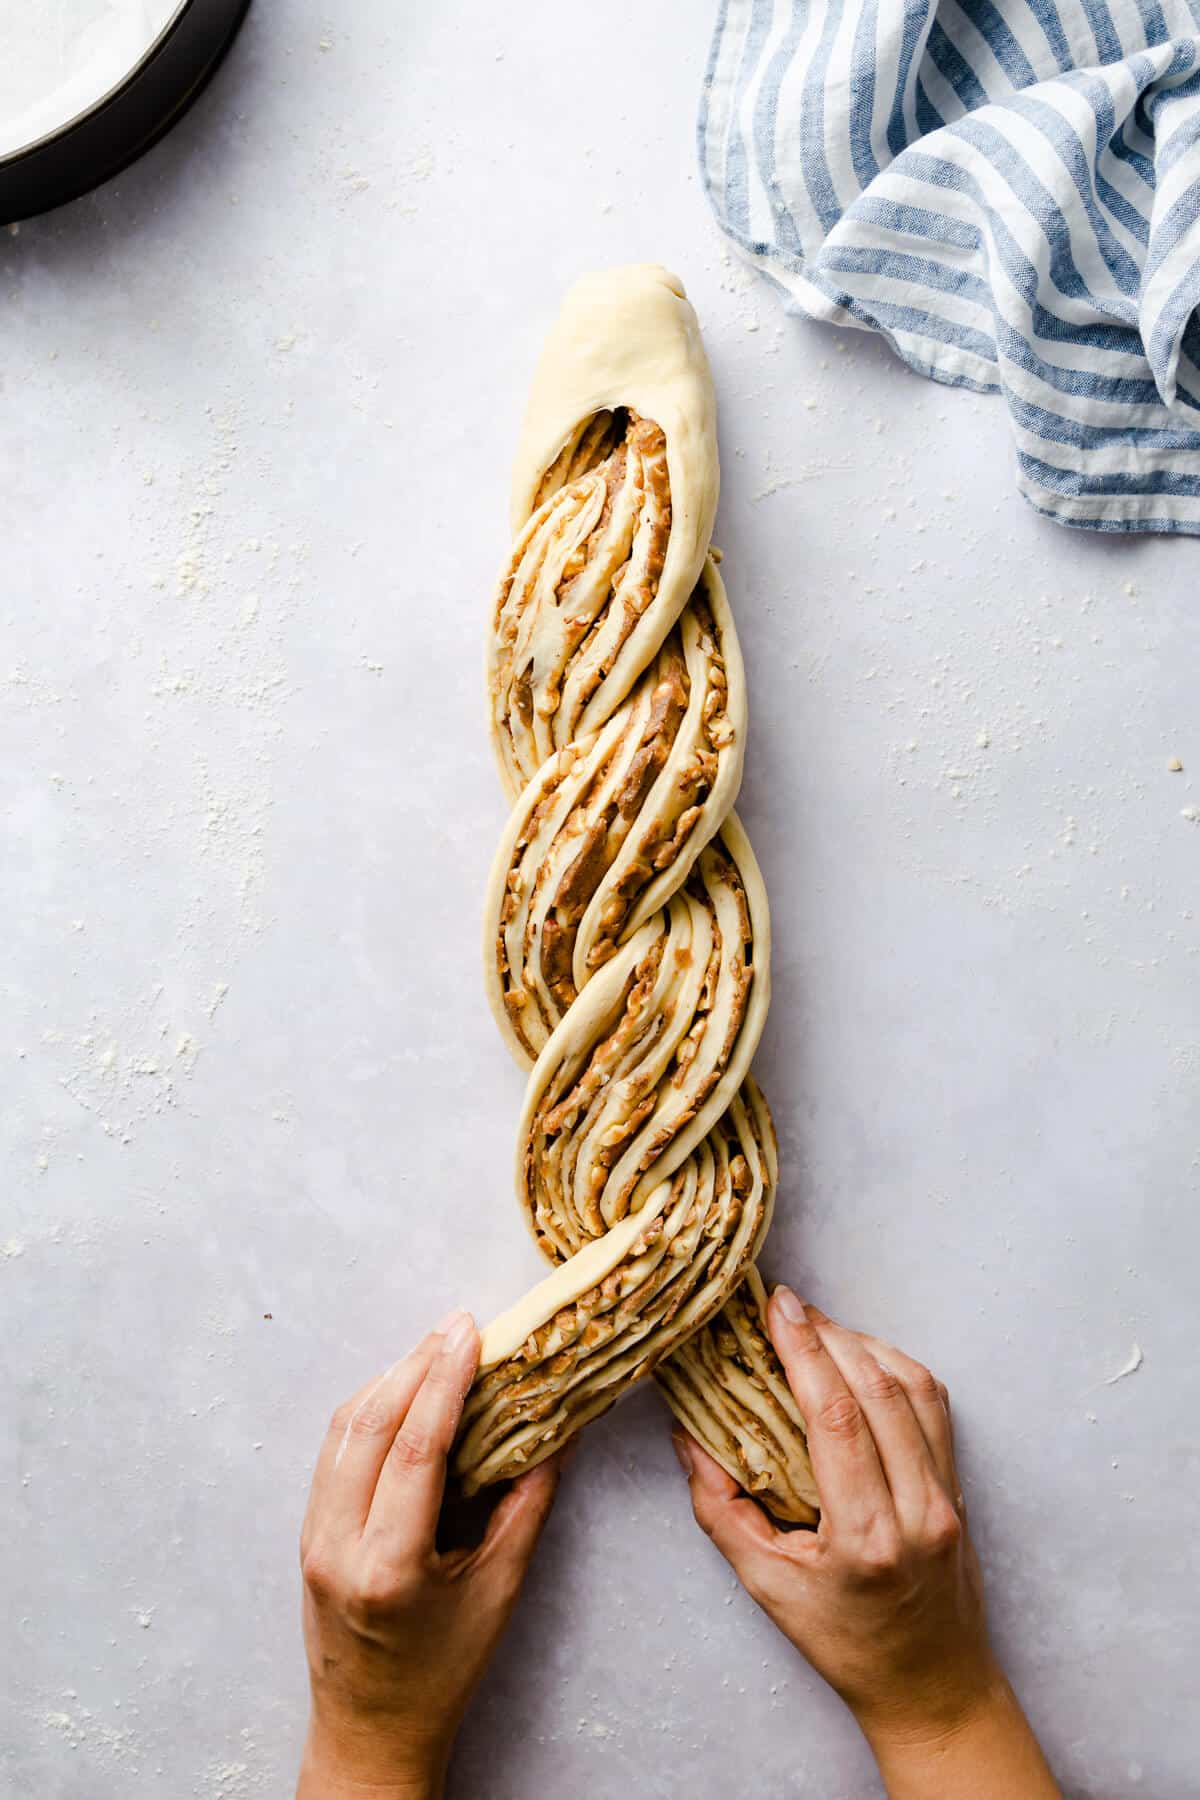 top view of a dough being twisted for cinnamon and hazelnut bread